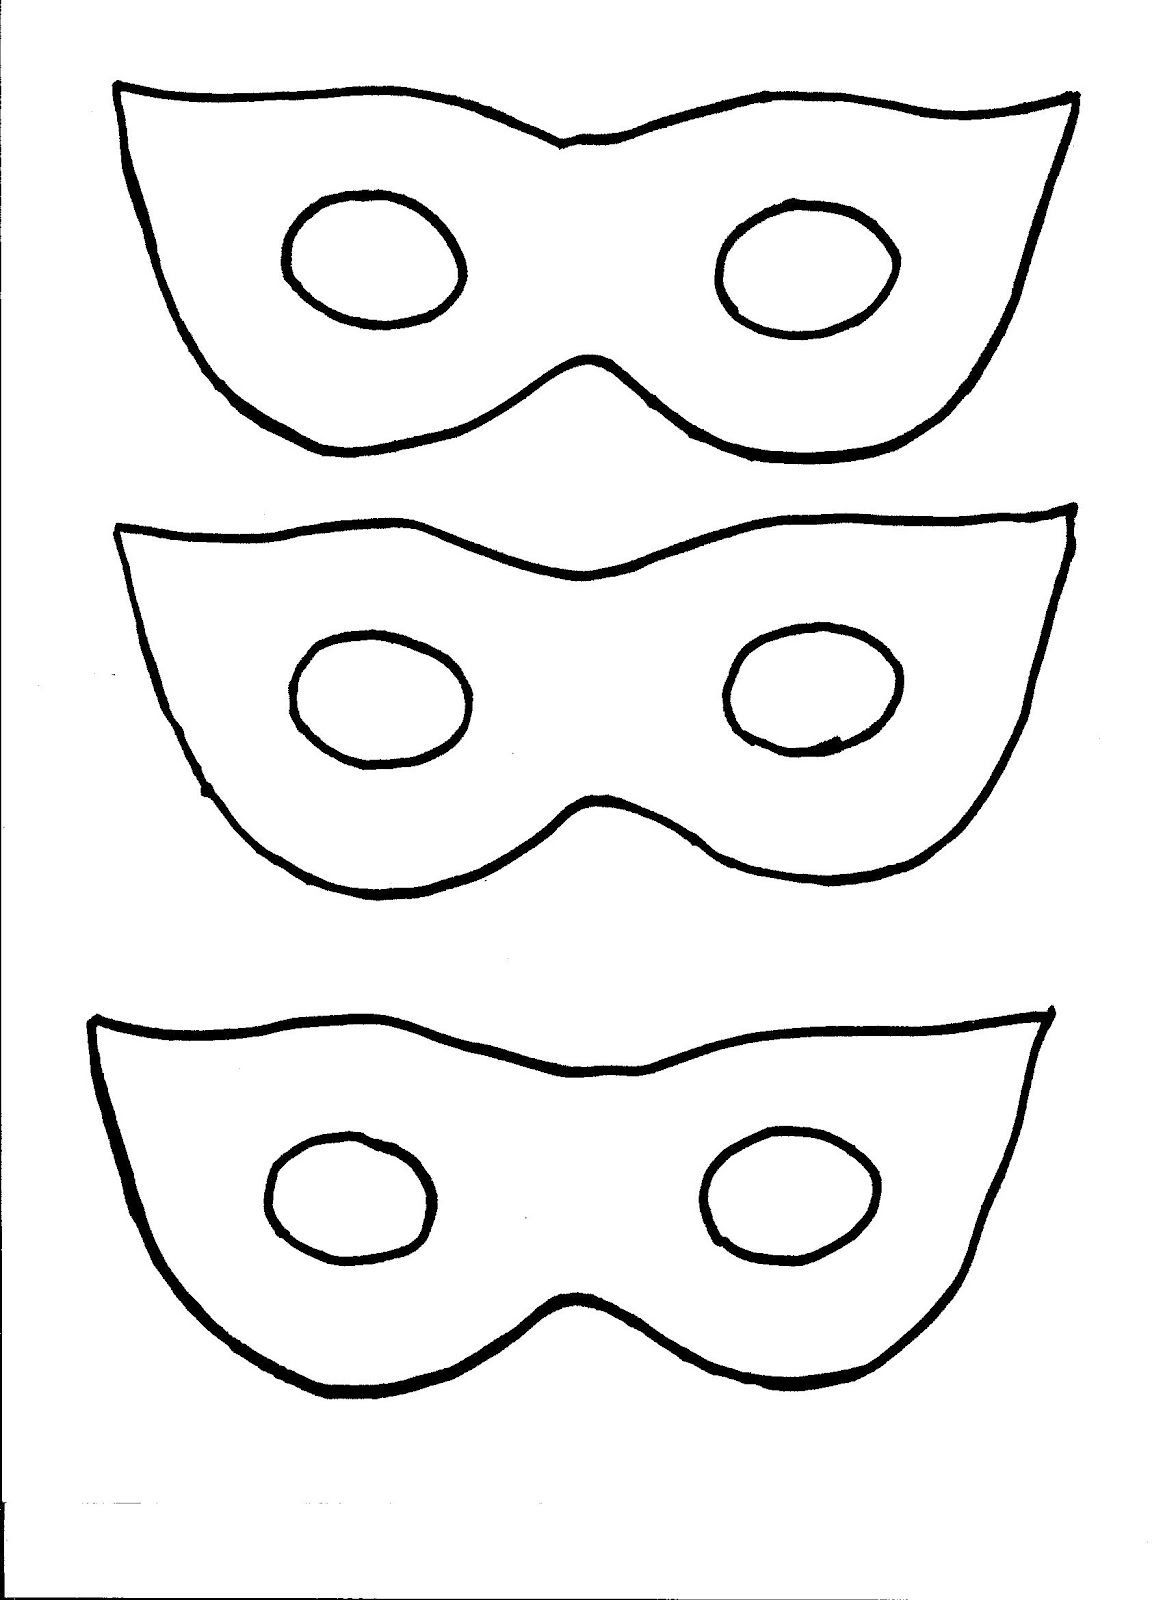 Awesome Superman Mask Coloring Pages Nice Superman Mask Coloring